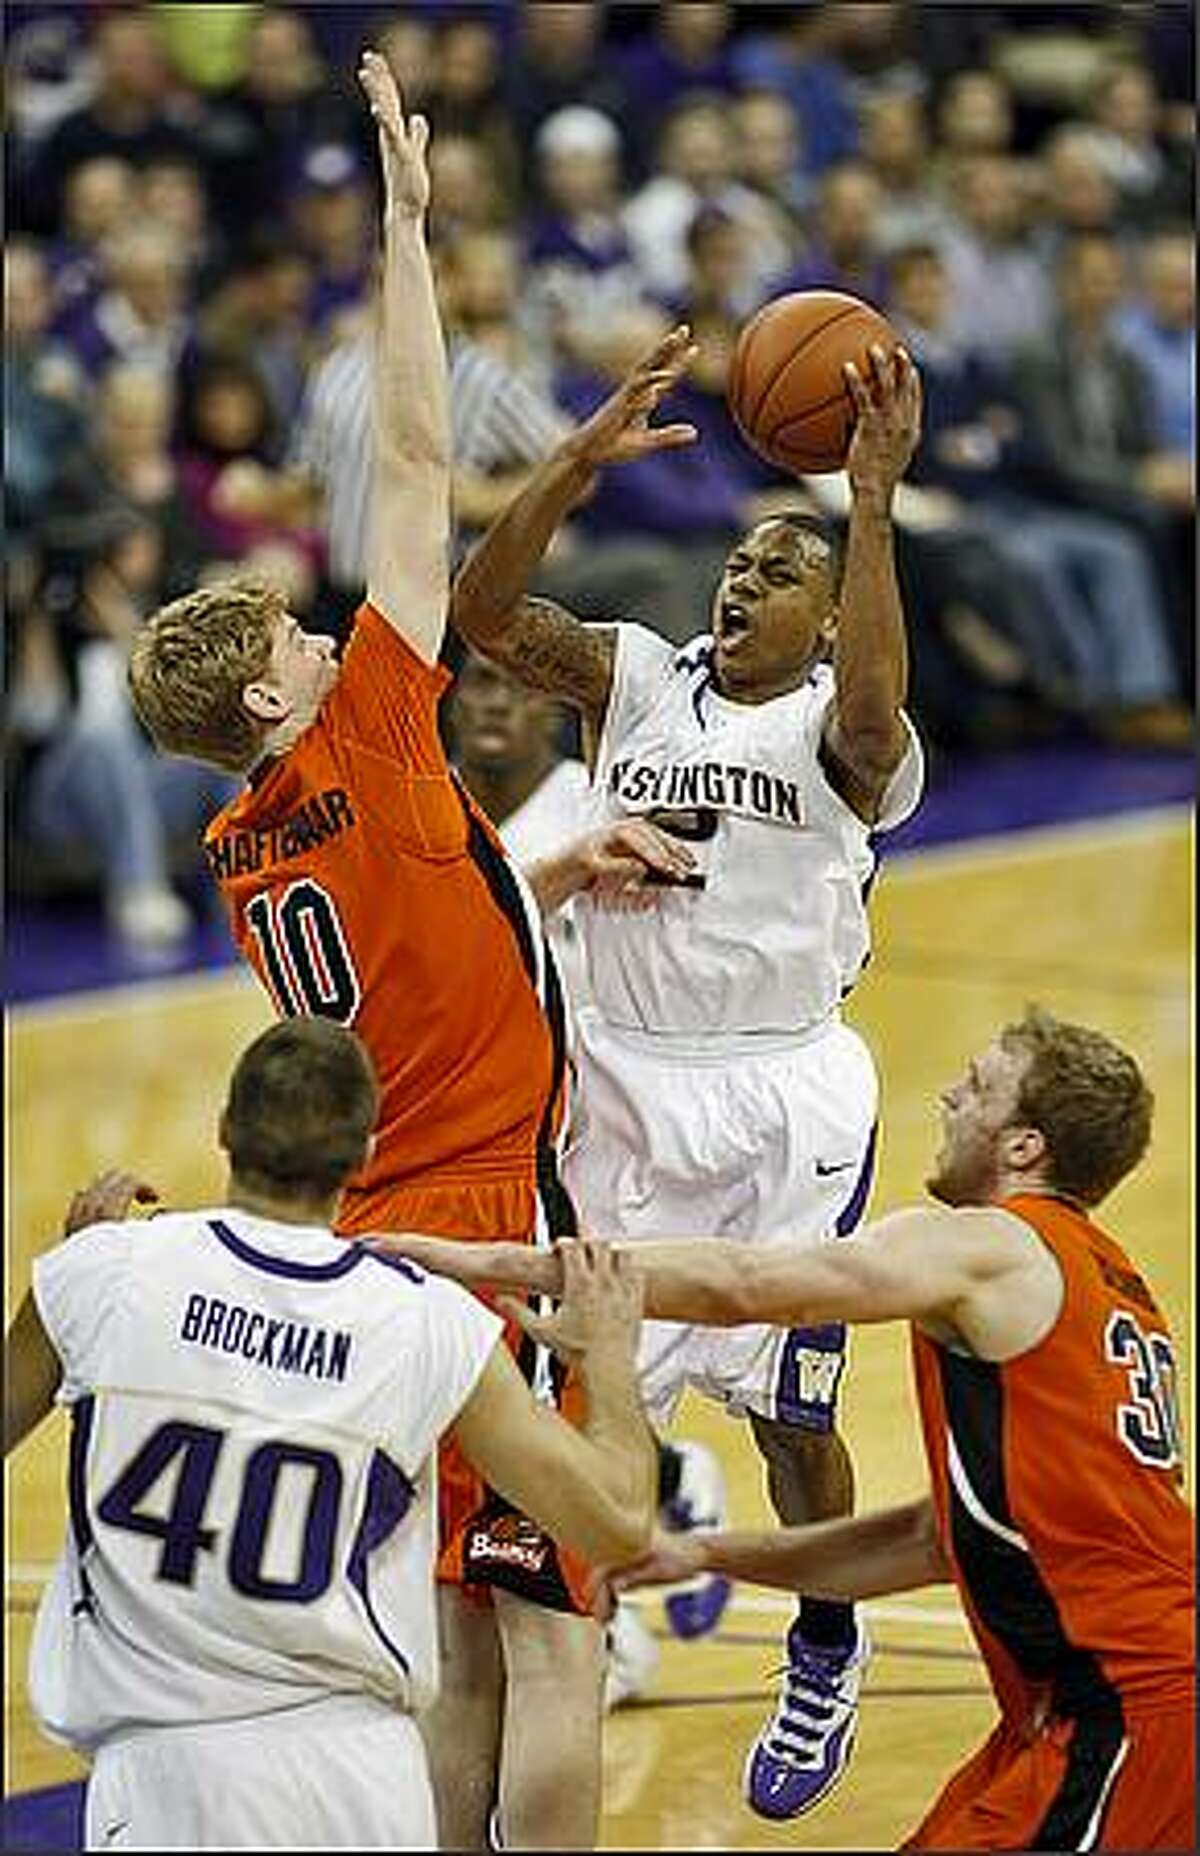 Washington Huskies Isaiah Thomas' run at the hoop is thwarted by Oregon State Beavers Roeland Schaftenaar (10) during first half action at the University of Washington.